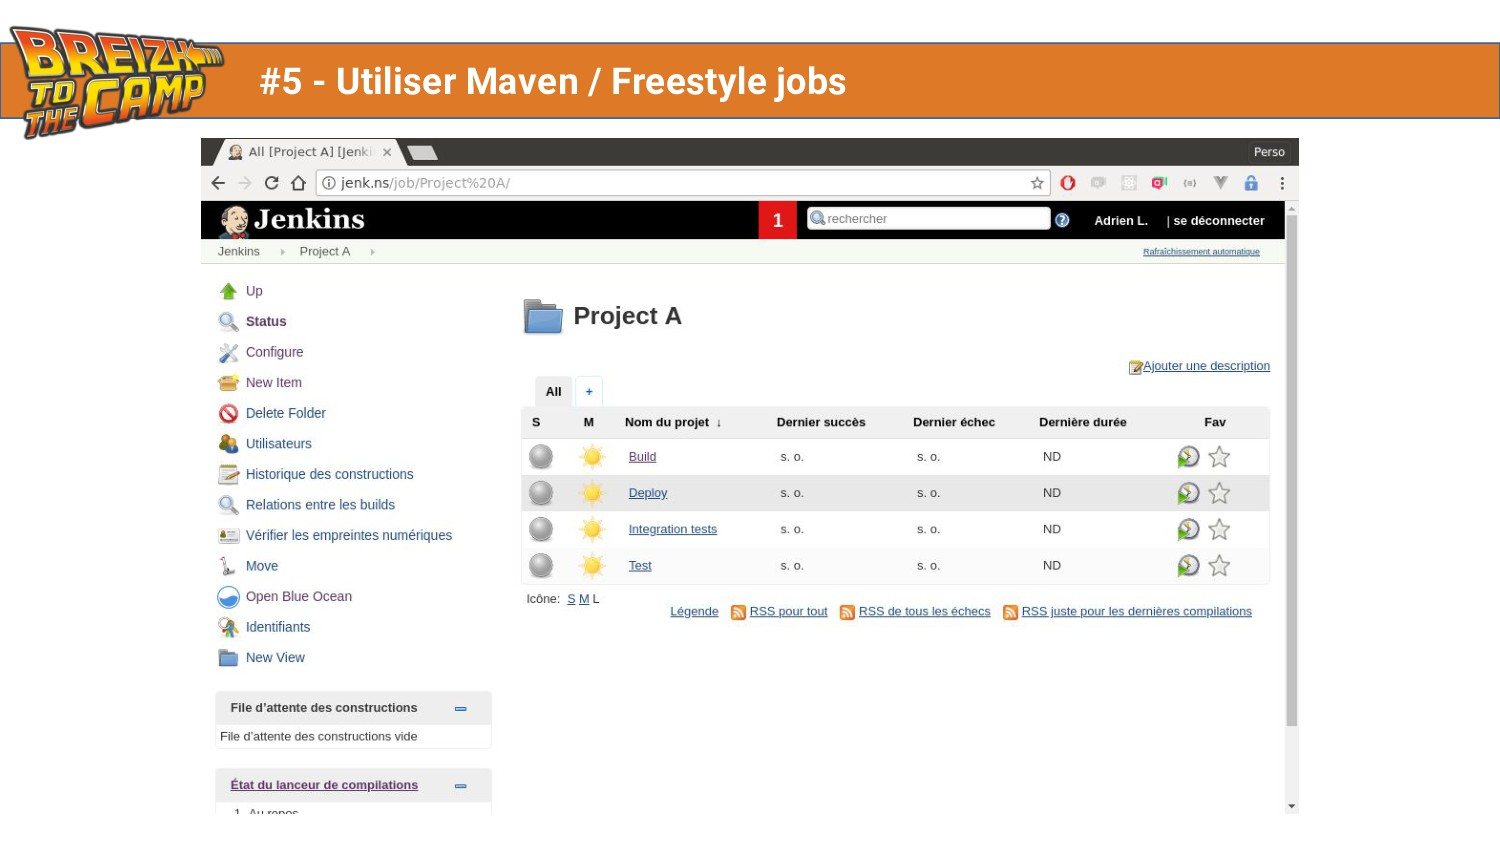 #5 - Utiliser Maven / Freestyle jobs